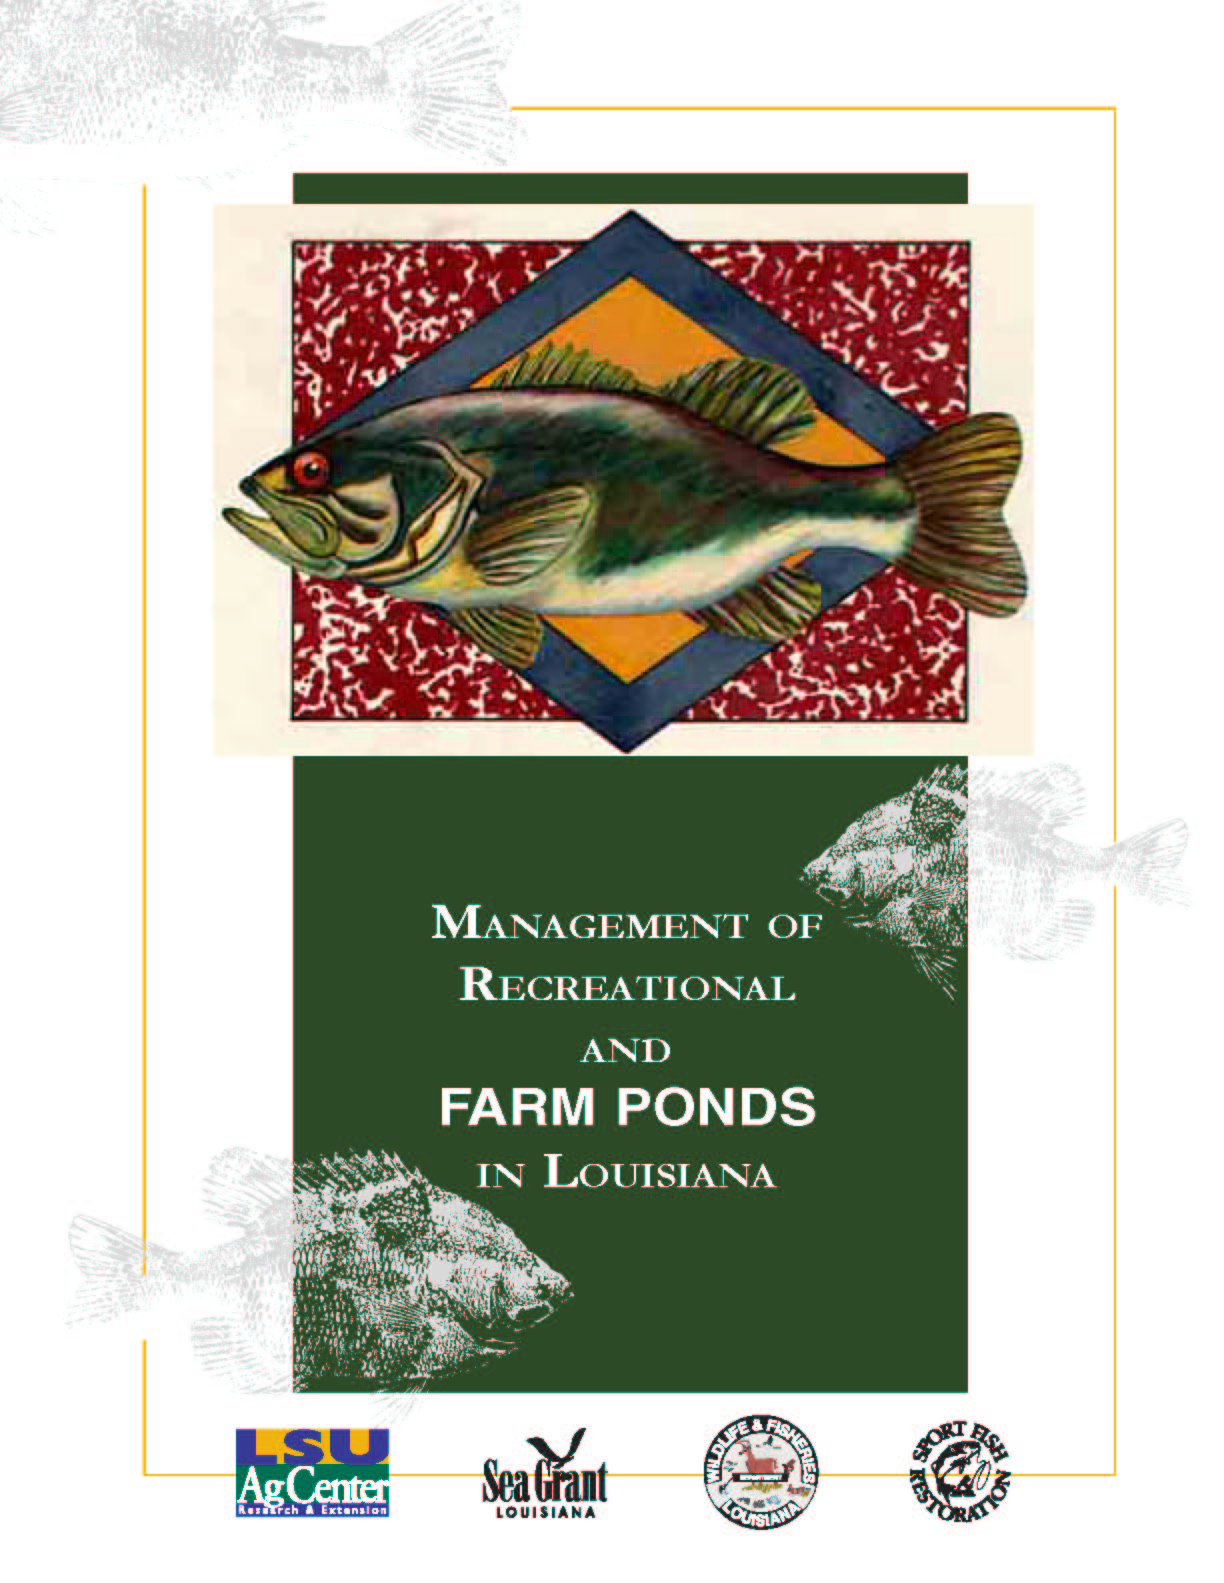 Management of Recreational and Farm Ponds in Louisiana